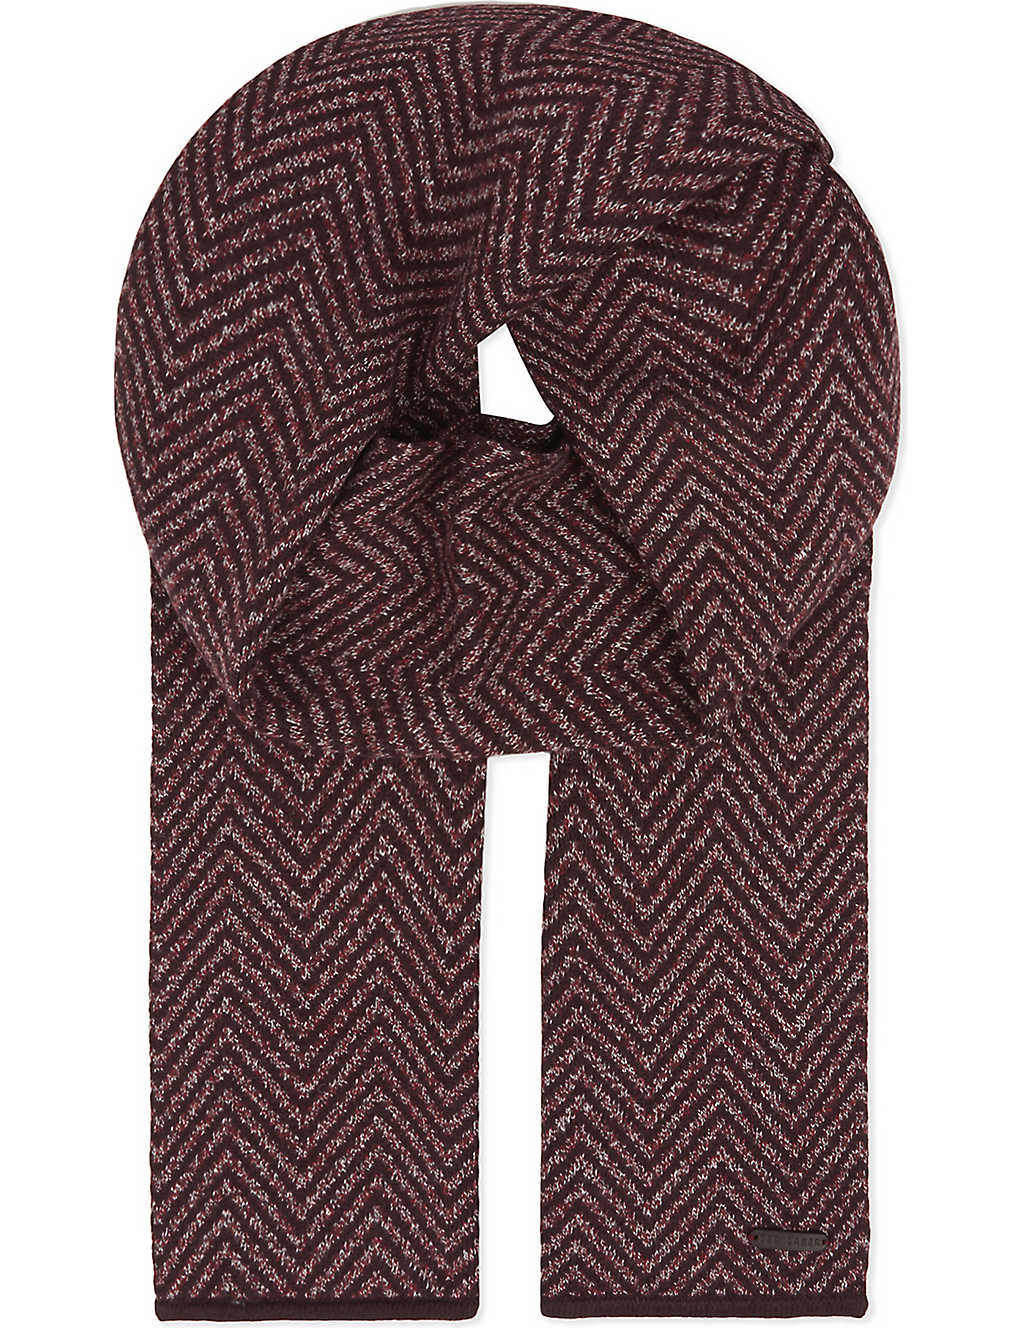 7a52d7f7e TED BAKER - Hide herringbone cotton scarf